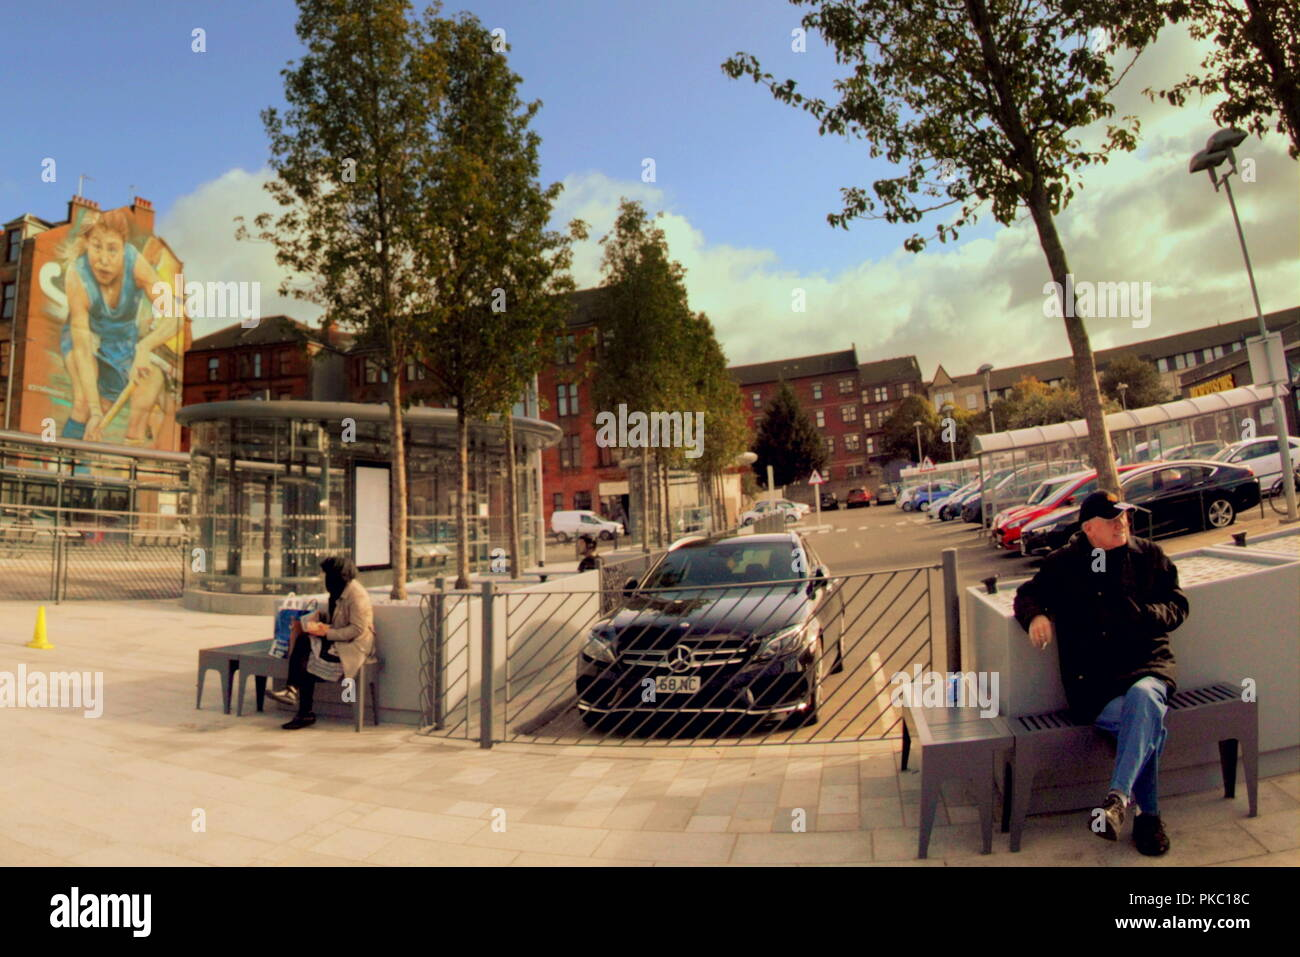 Glasgow, Scotland, UK, 12th September, 2018. UK Weather: Sunny weather on the newly revamped Partick bus station today as locals sit in the sun ahead of stormy weather forecast for later in the month. Credit: gerard ferry/Alamy Live News - Stock Image